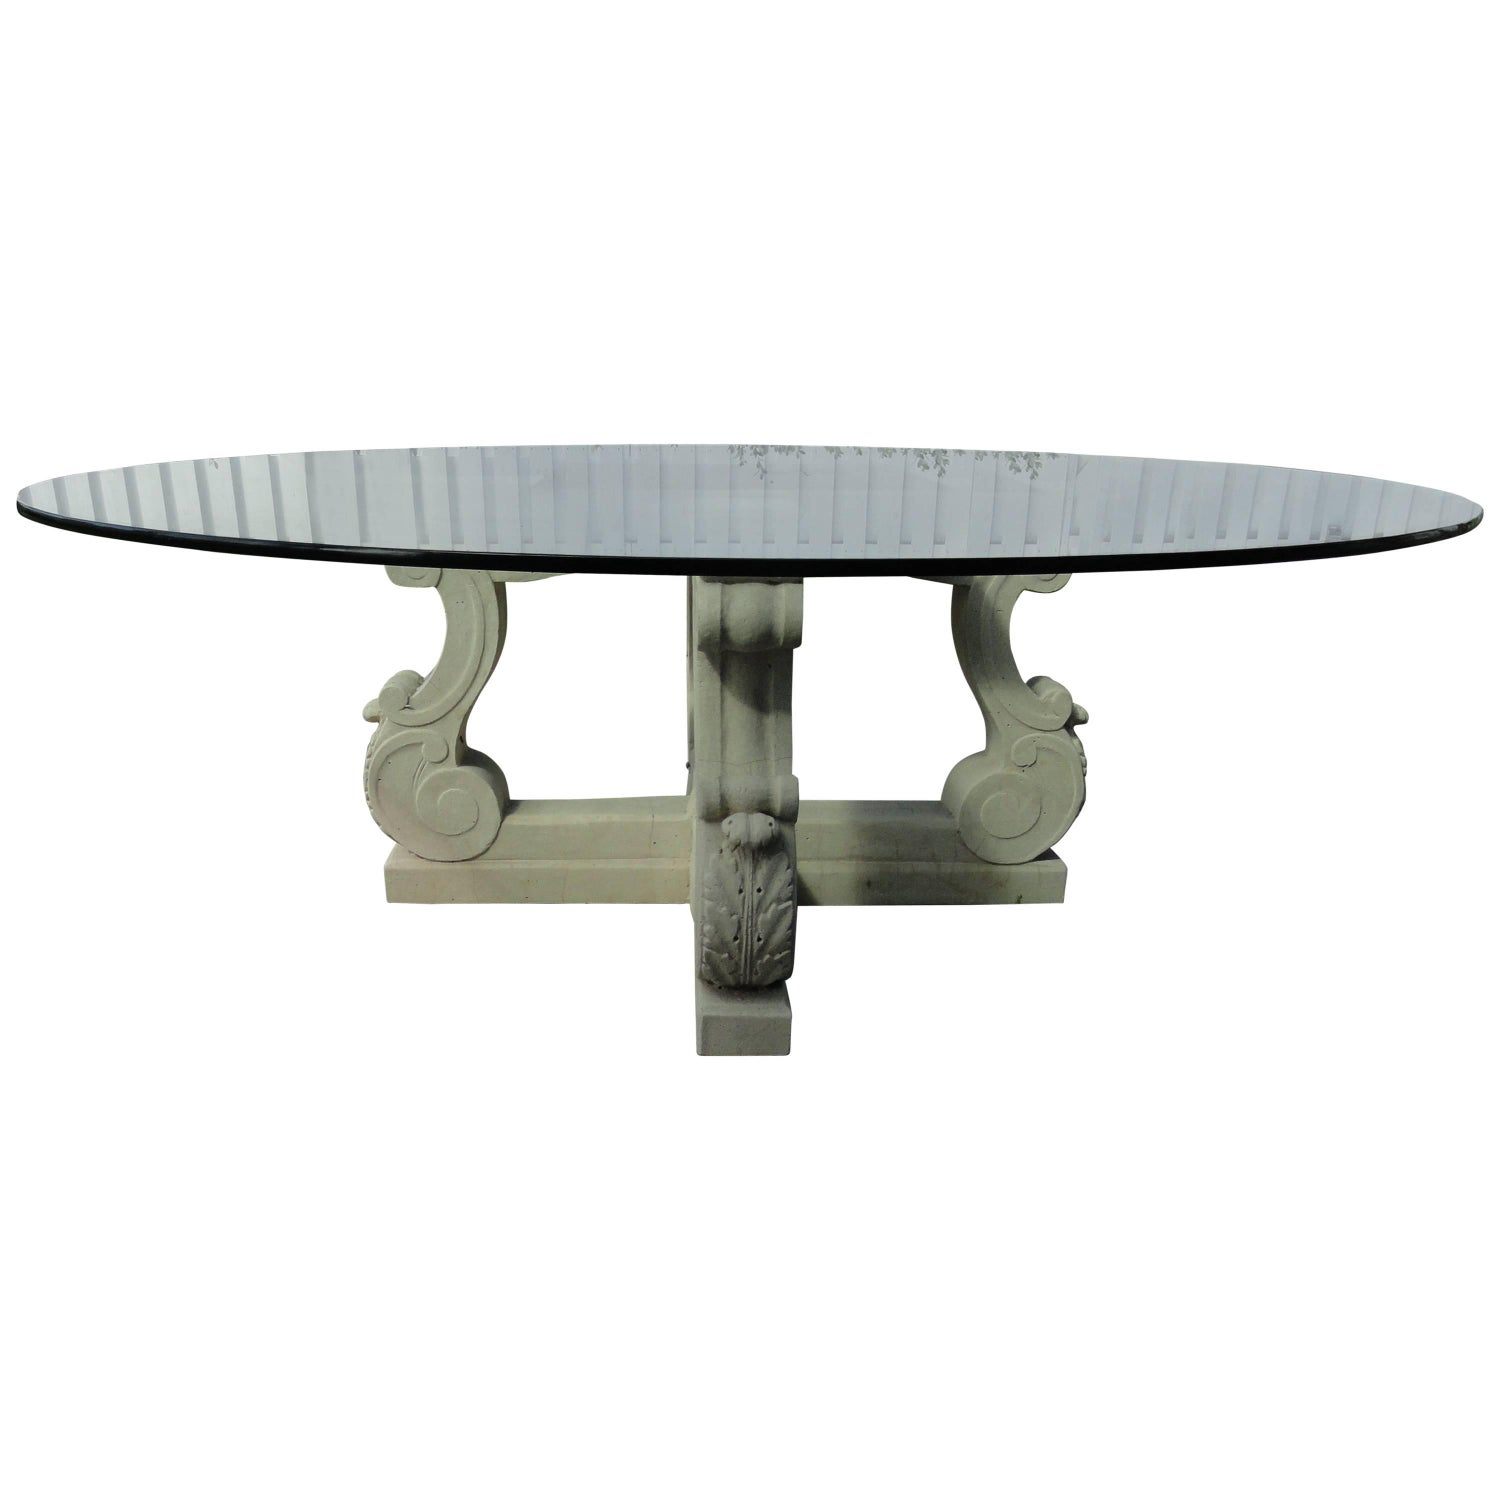 Michael taylor cyprus tree trunk dining table at 1stdibs - Michael Taylor Cyprus Tree Trunk Dining Table At 1stdibs 36